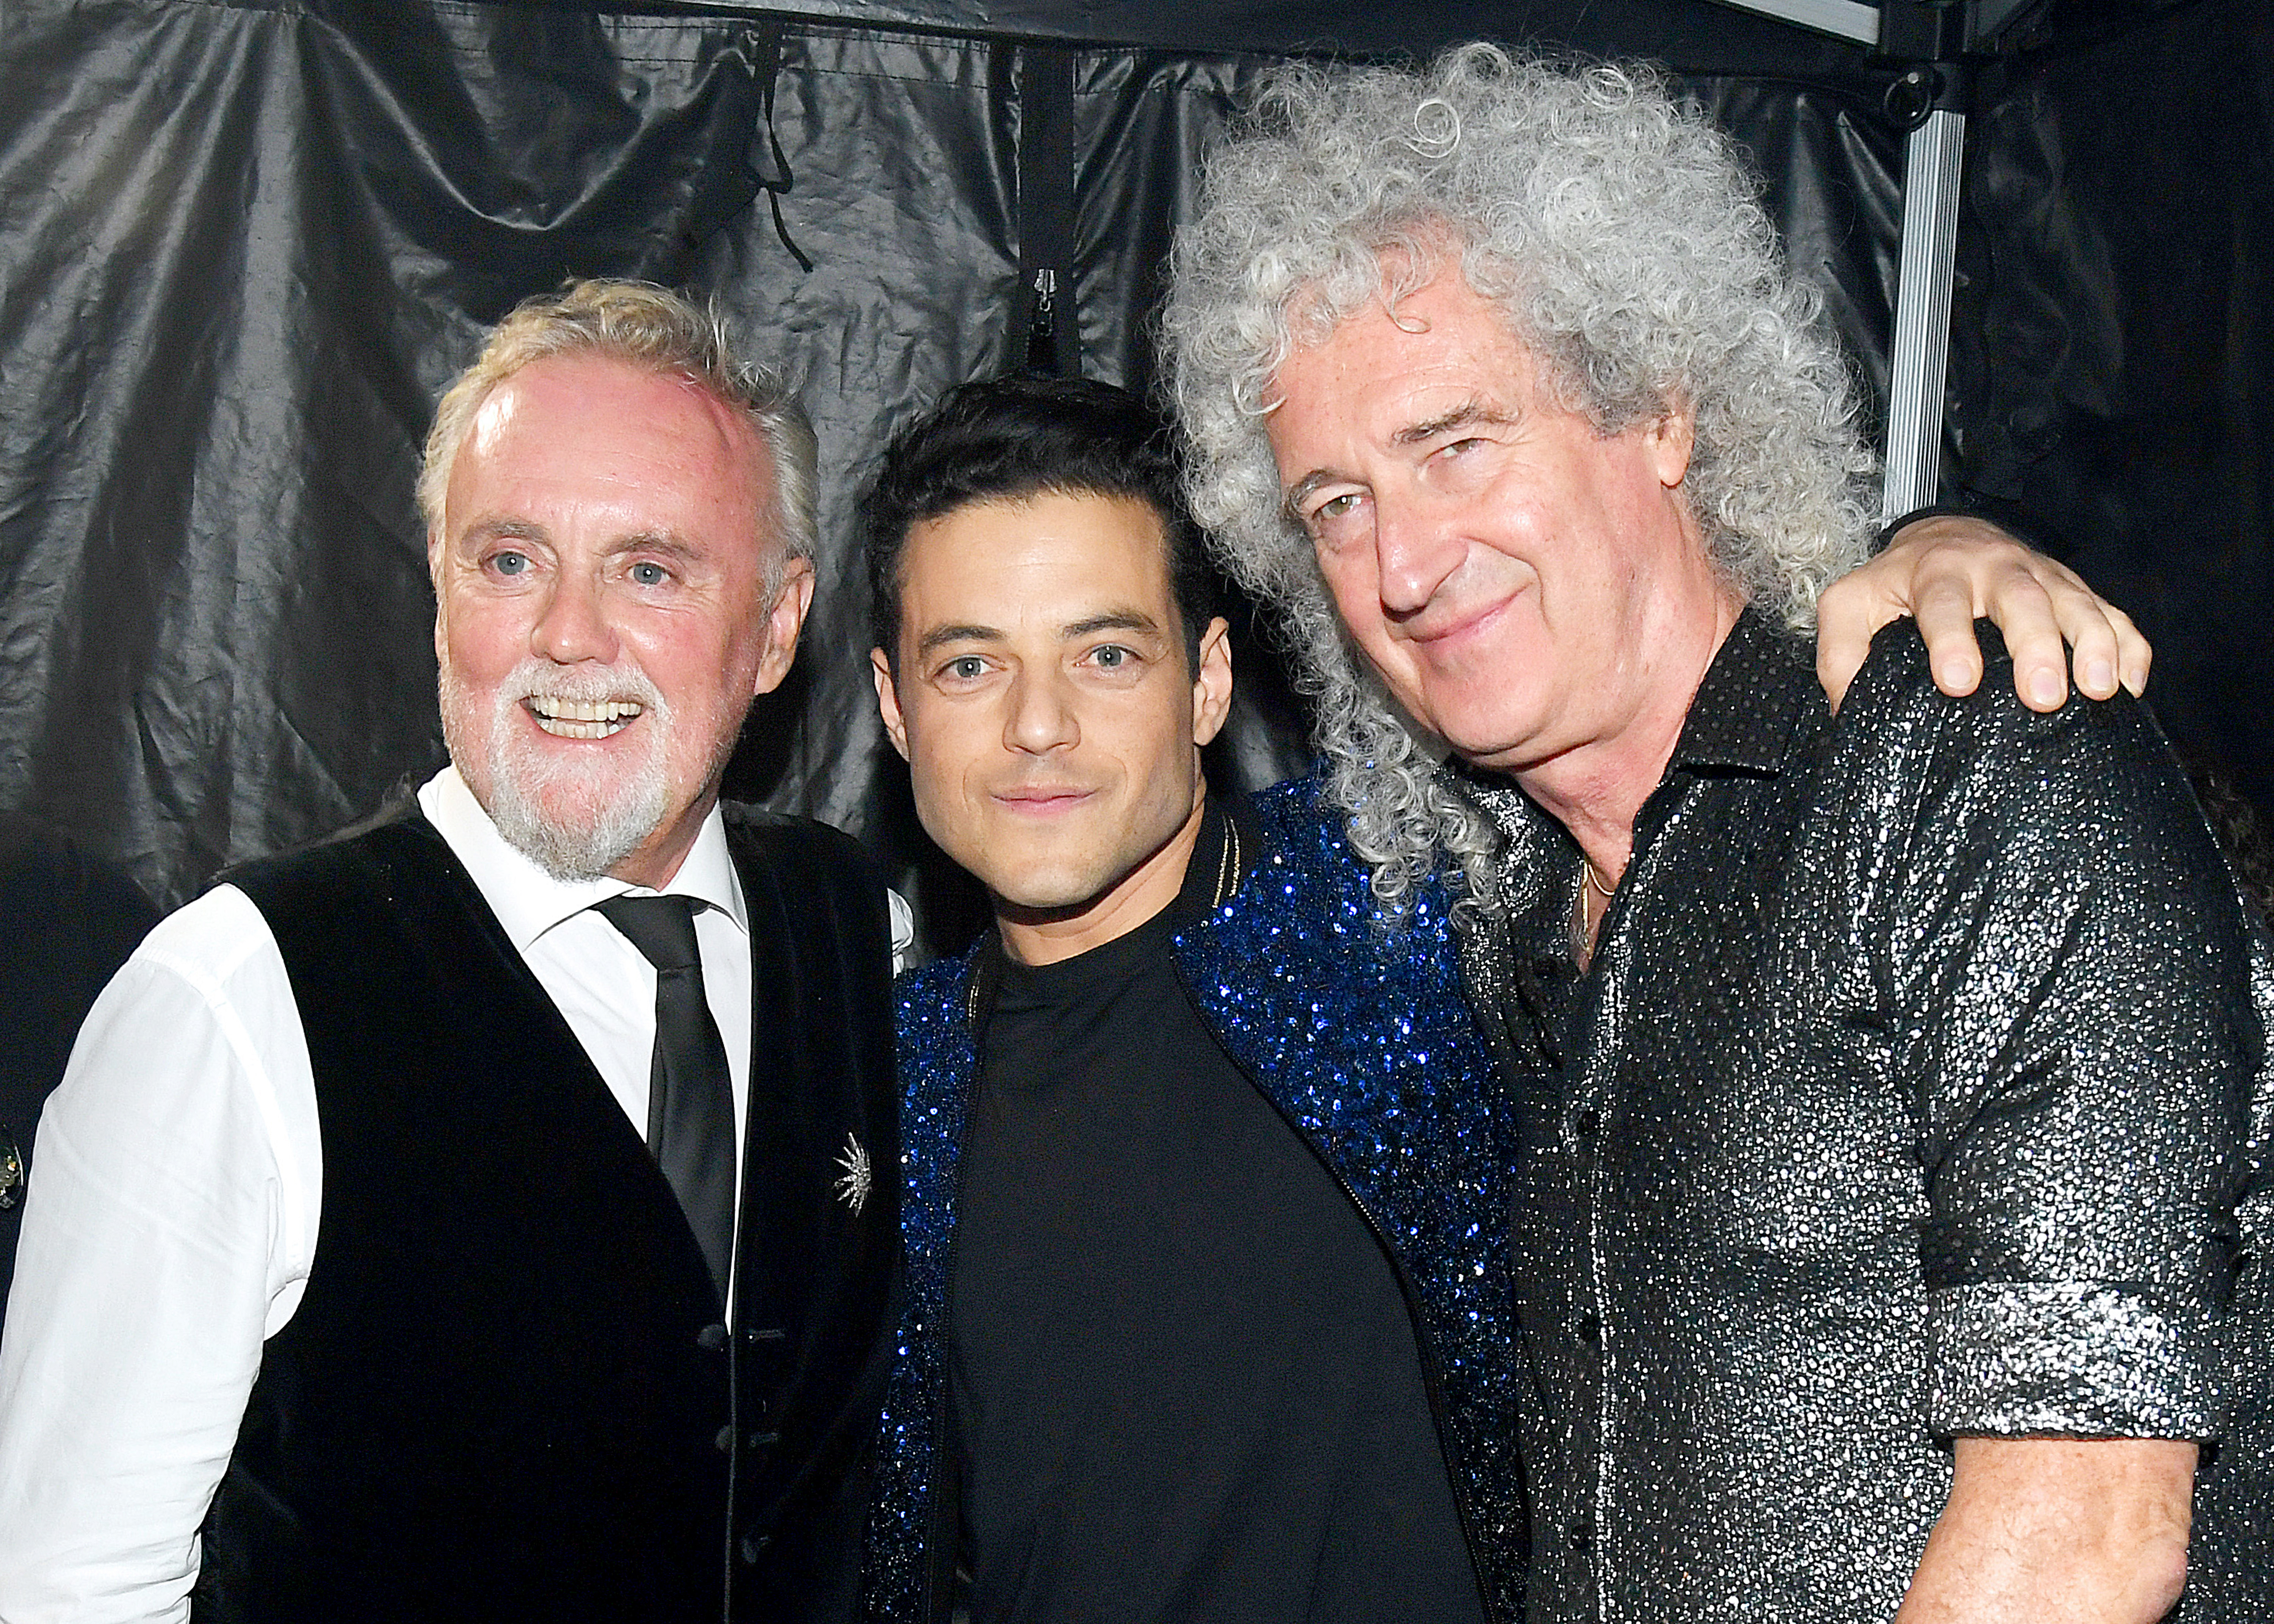 NEW YORK, NEW YORK - SEPTEMBER 28: Roger Taylor, Rami Malek, and Brian May attend the 2019 Global Citizen Festival: Power The Movement in Central Park on September 28, 2019 in New York City. (Photo by Kevin Mazur/Getty Images for Global Citizen)